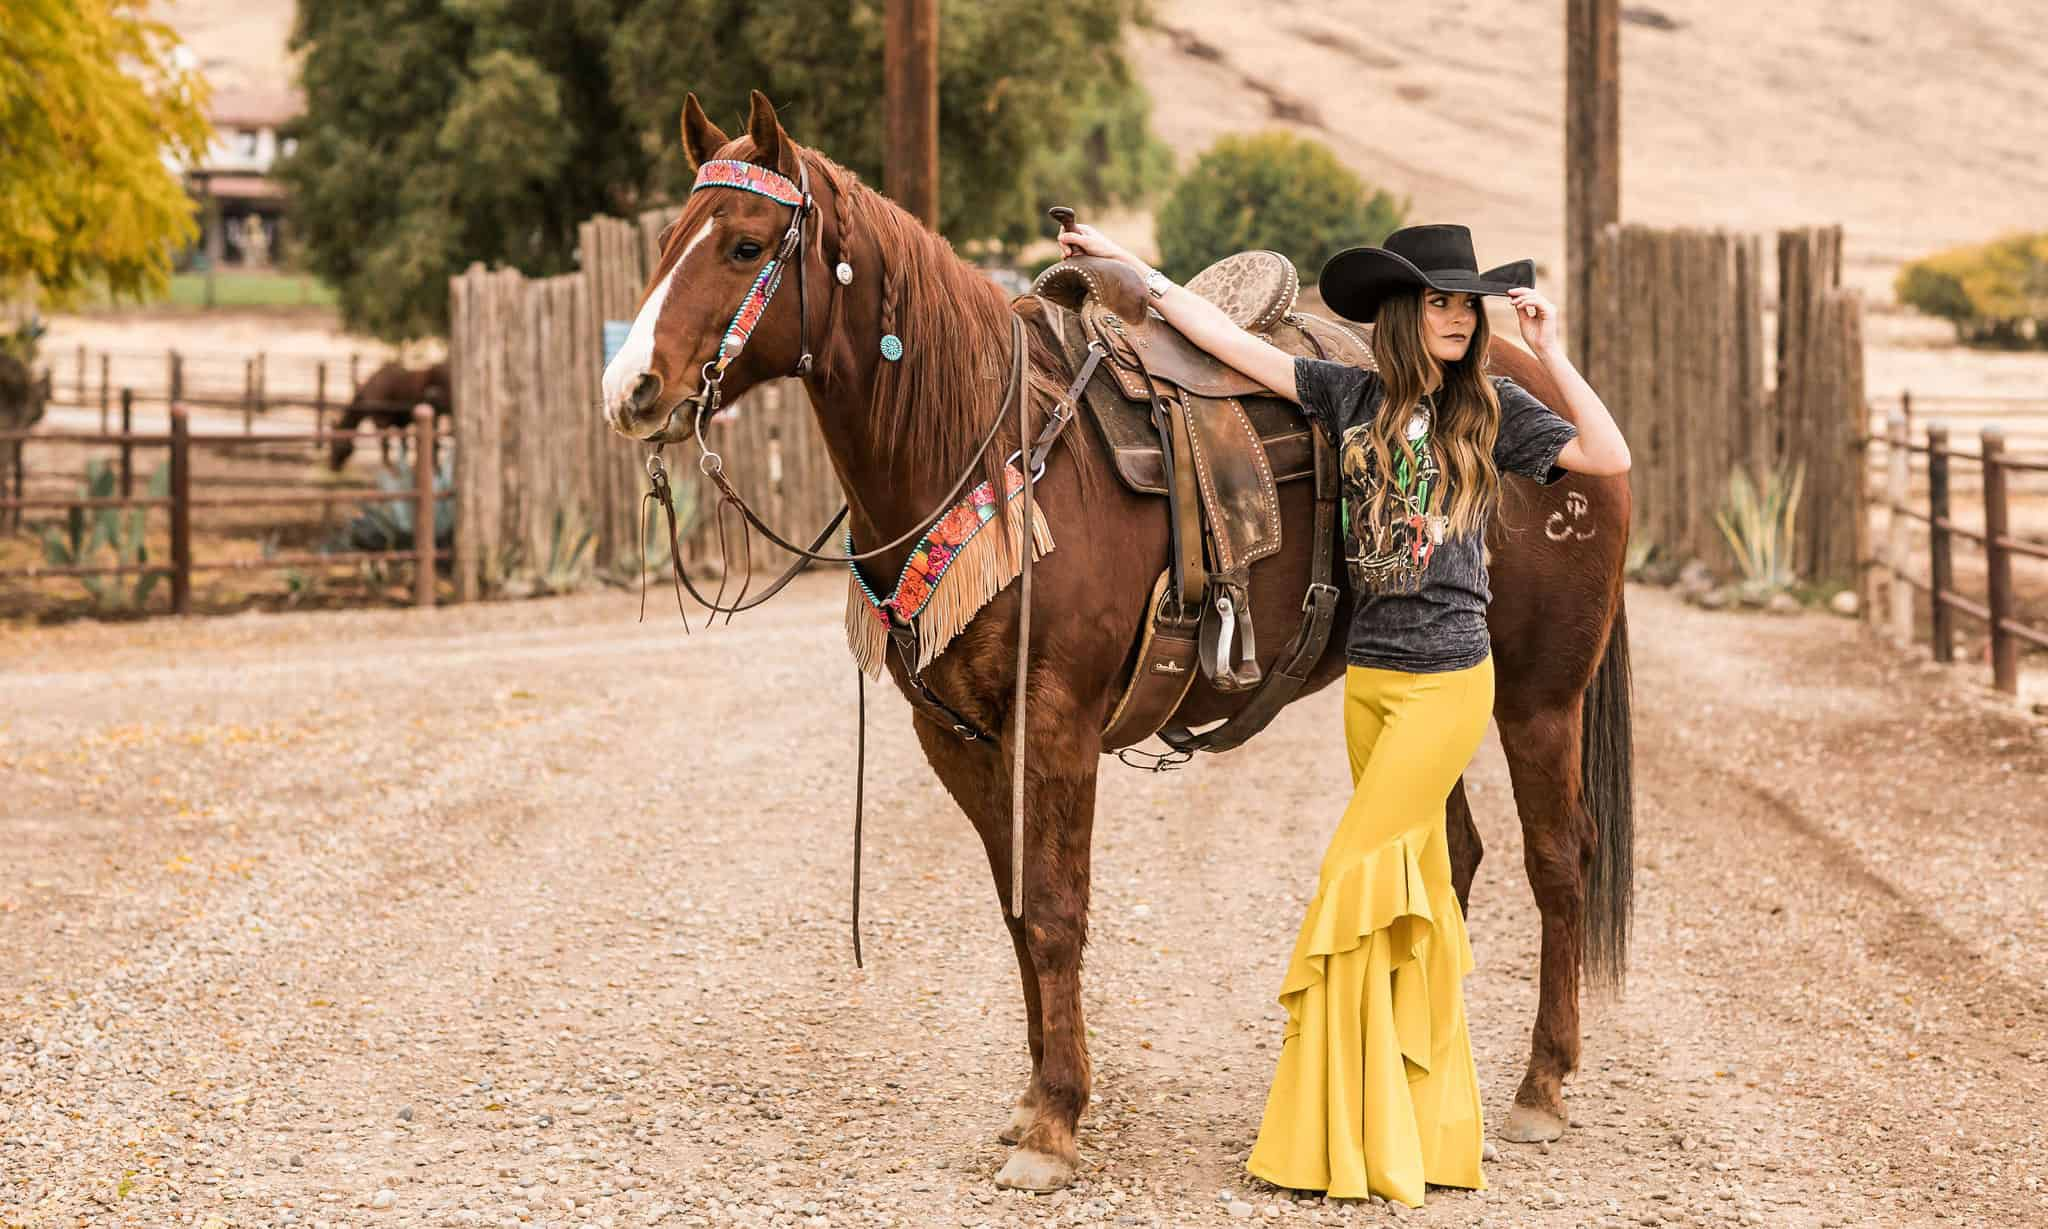 rodeo quincy tack on a horse with a girl wearing rodeo qunicy clothes